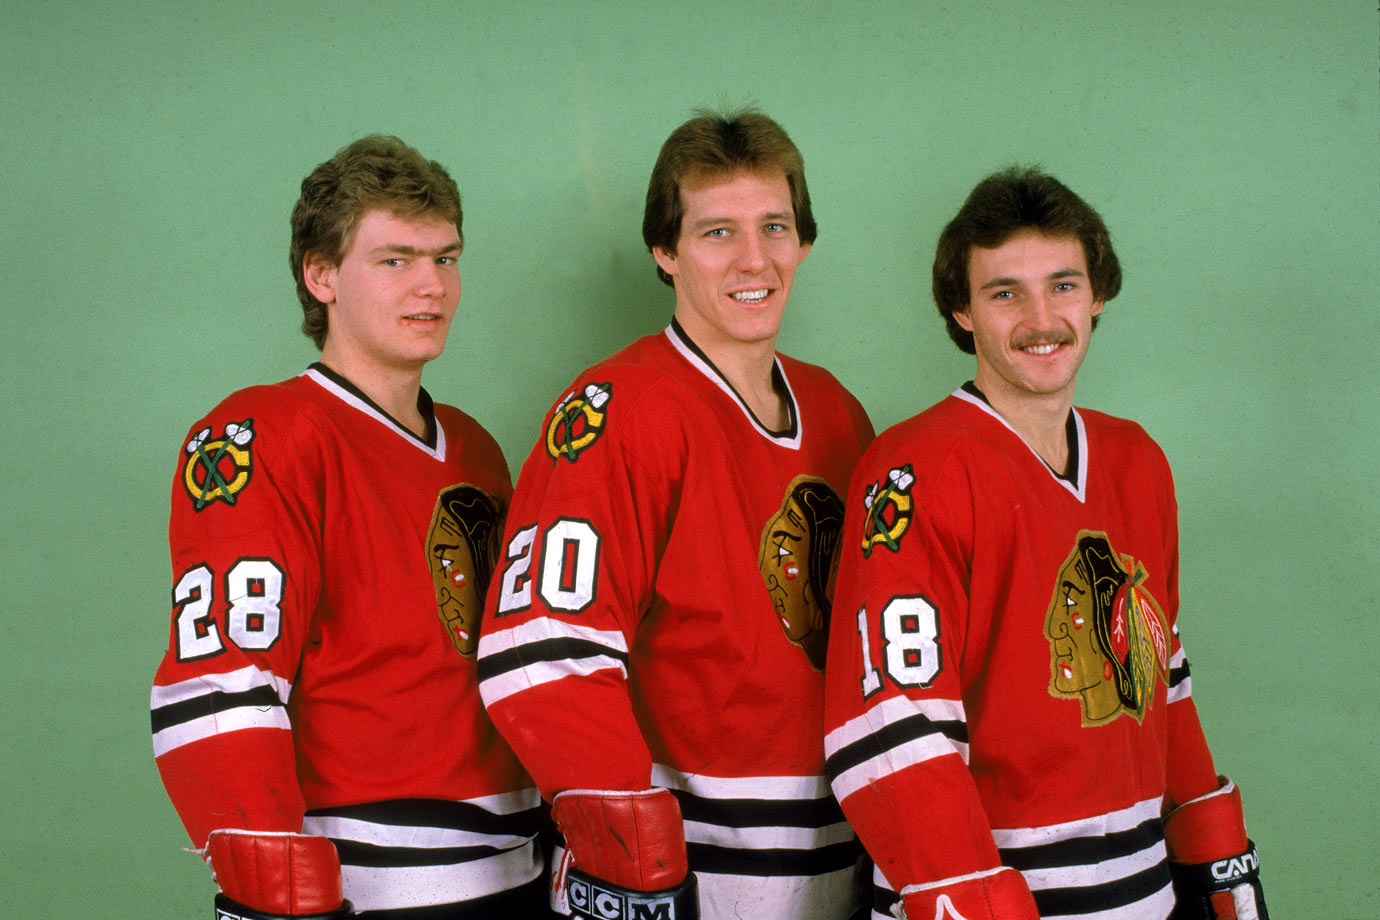 With Secord and Larmer on his wings, Savard certainly had a good time, leading the Hawks in scoring for seven seasons, including five 100-point campaigns. The trio set a team-mark of 297 total points in 1982-83, with Larmer (90) taking the Calder Trophy as the league's top rookie.